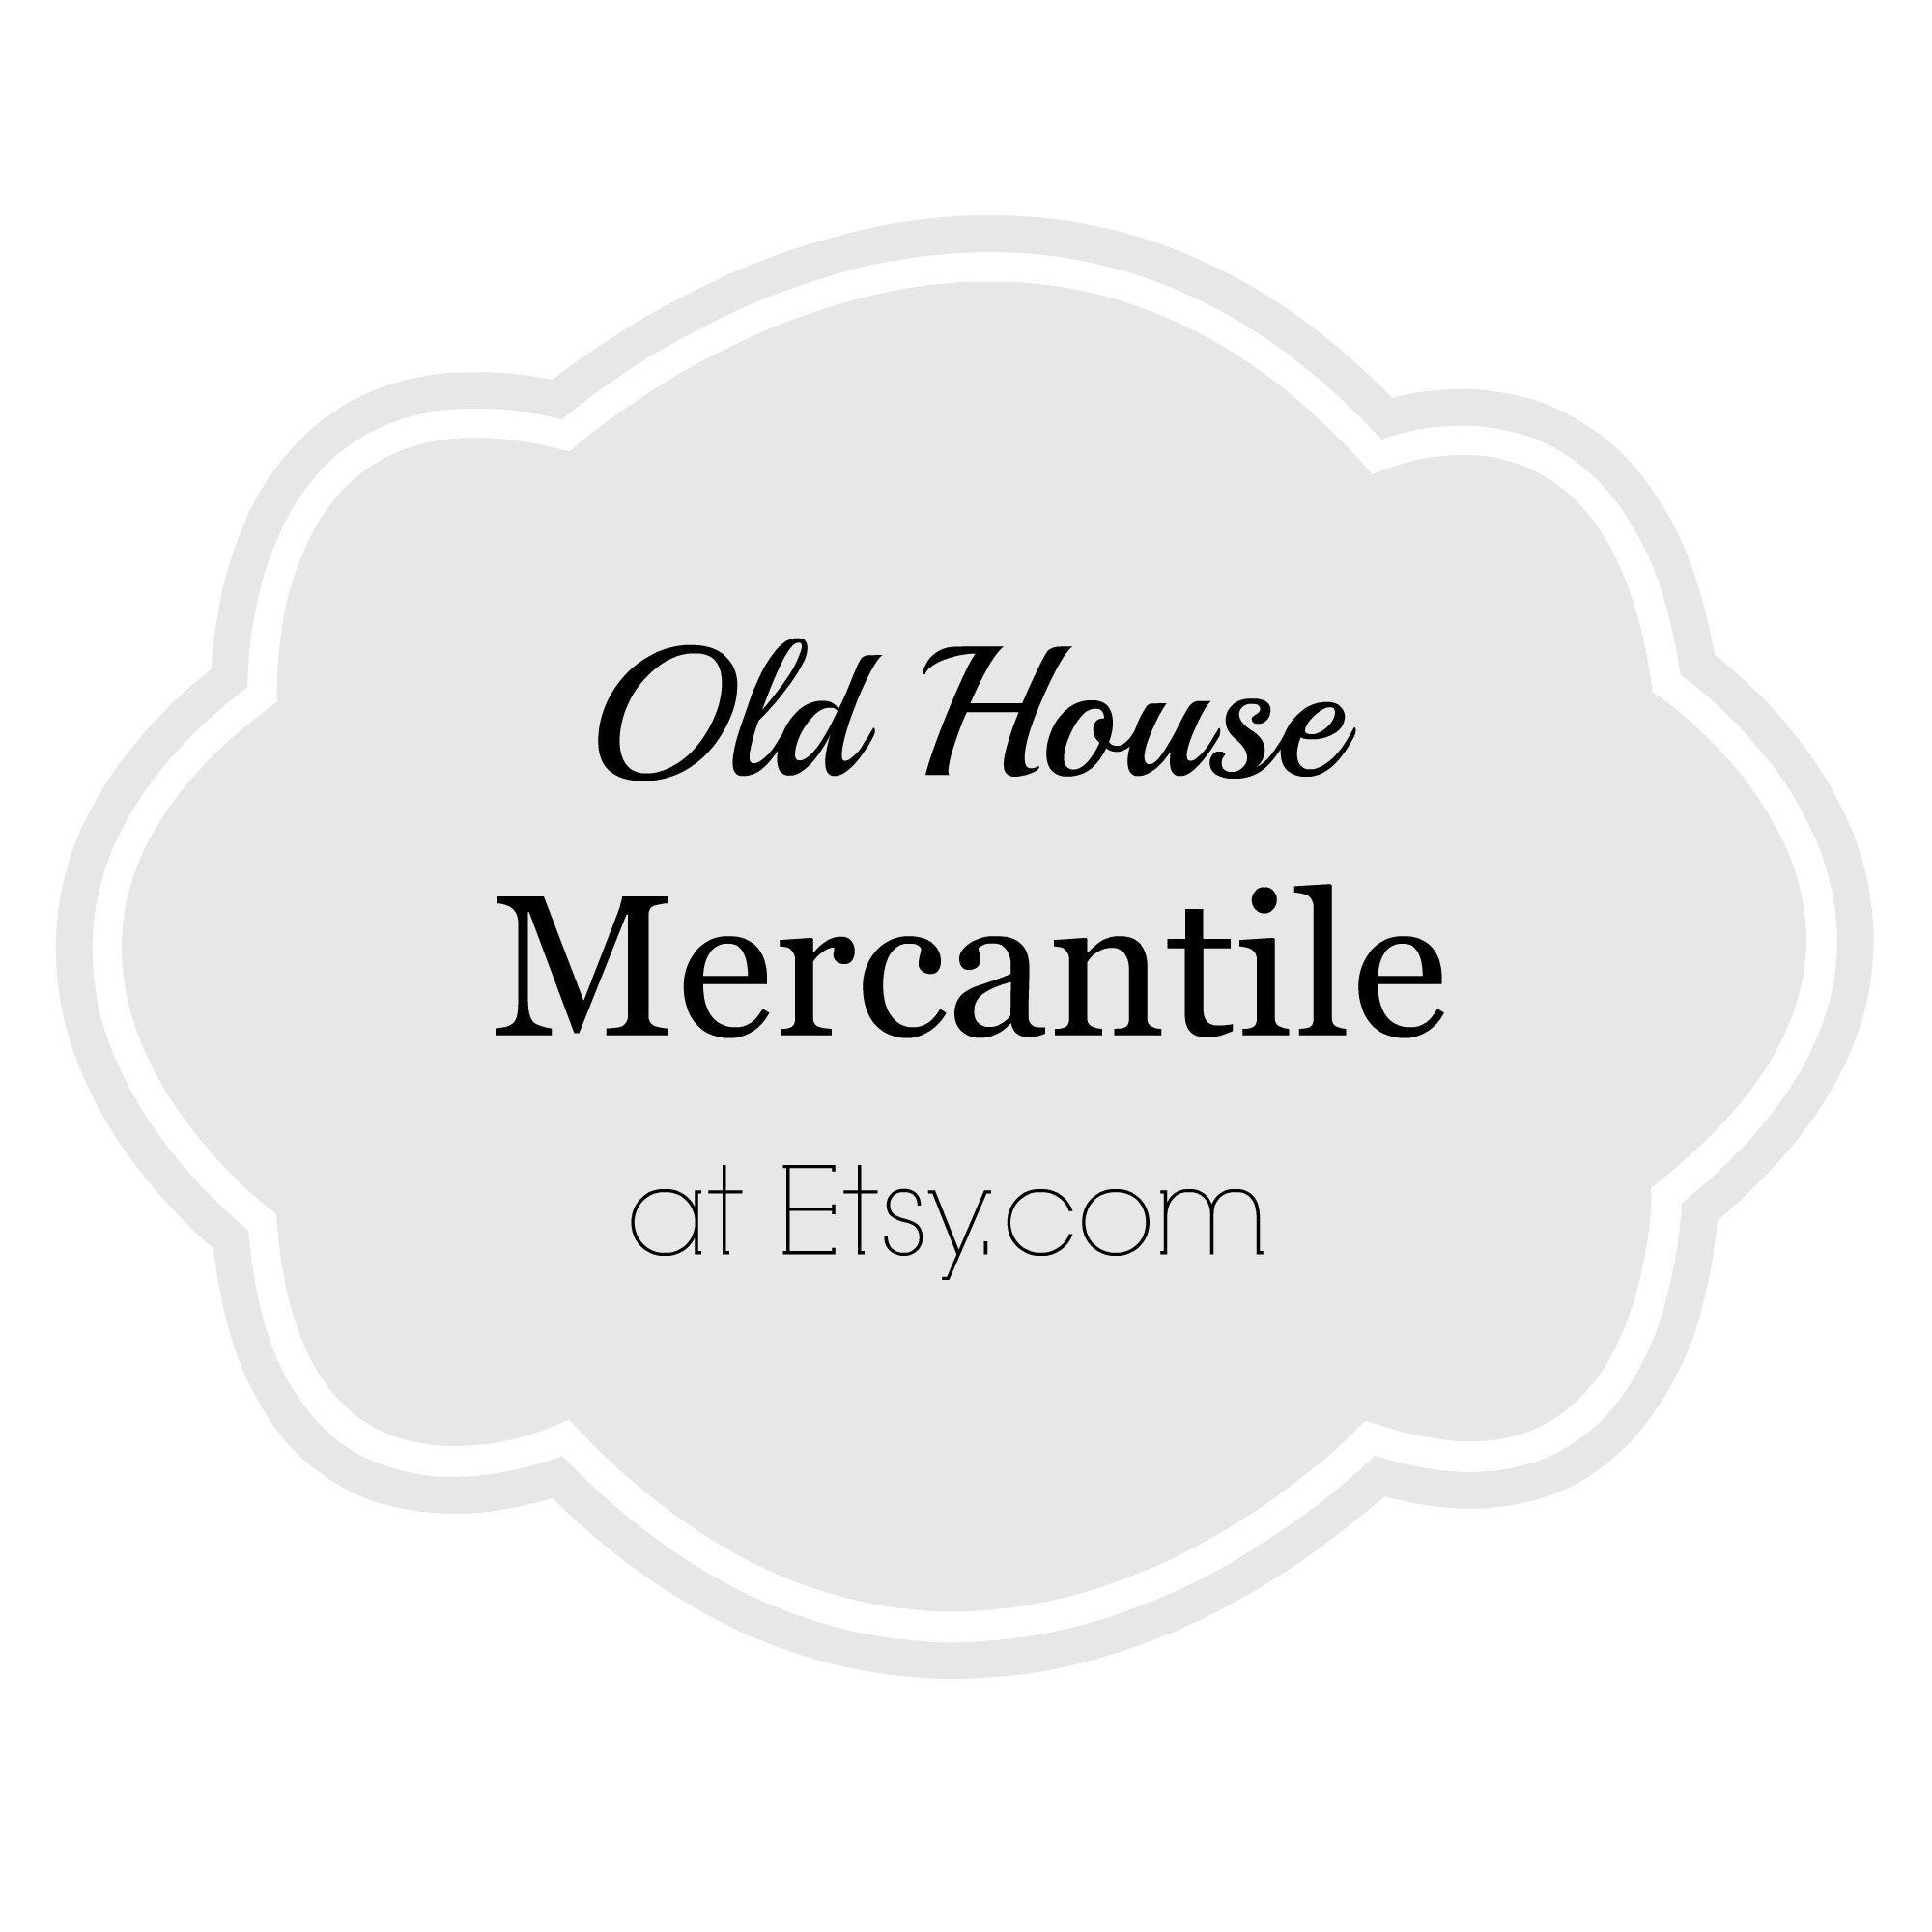 Old House Mercantile